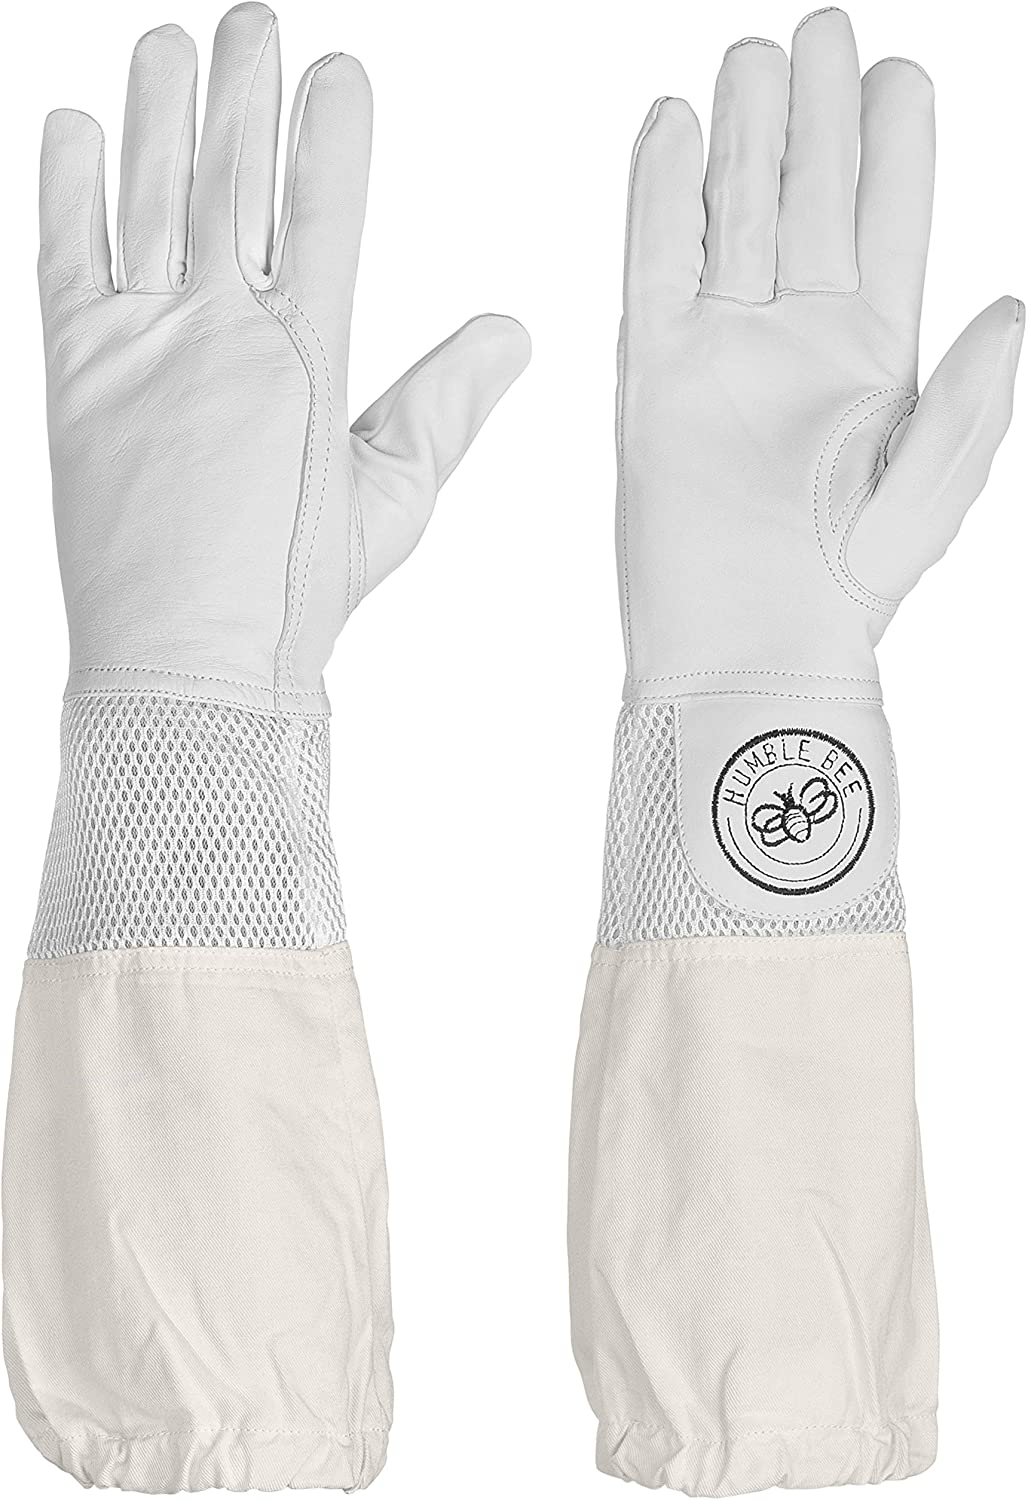 Humble Bee 112 Goatskin Beekeeping Gloves with Ventilated Cuffs